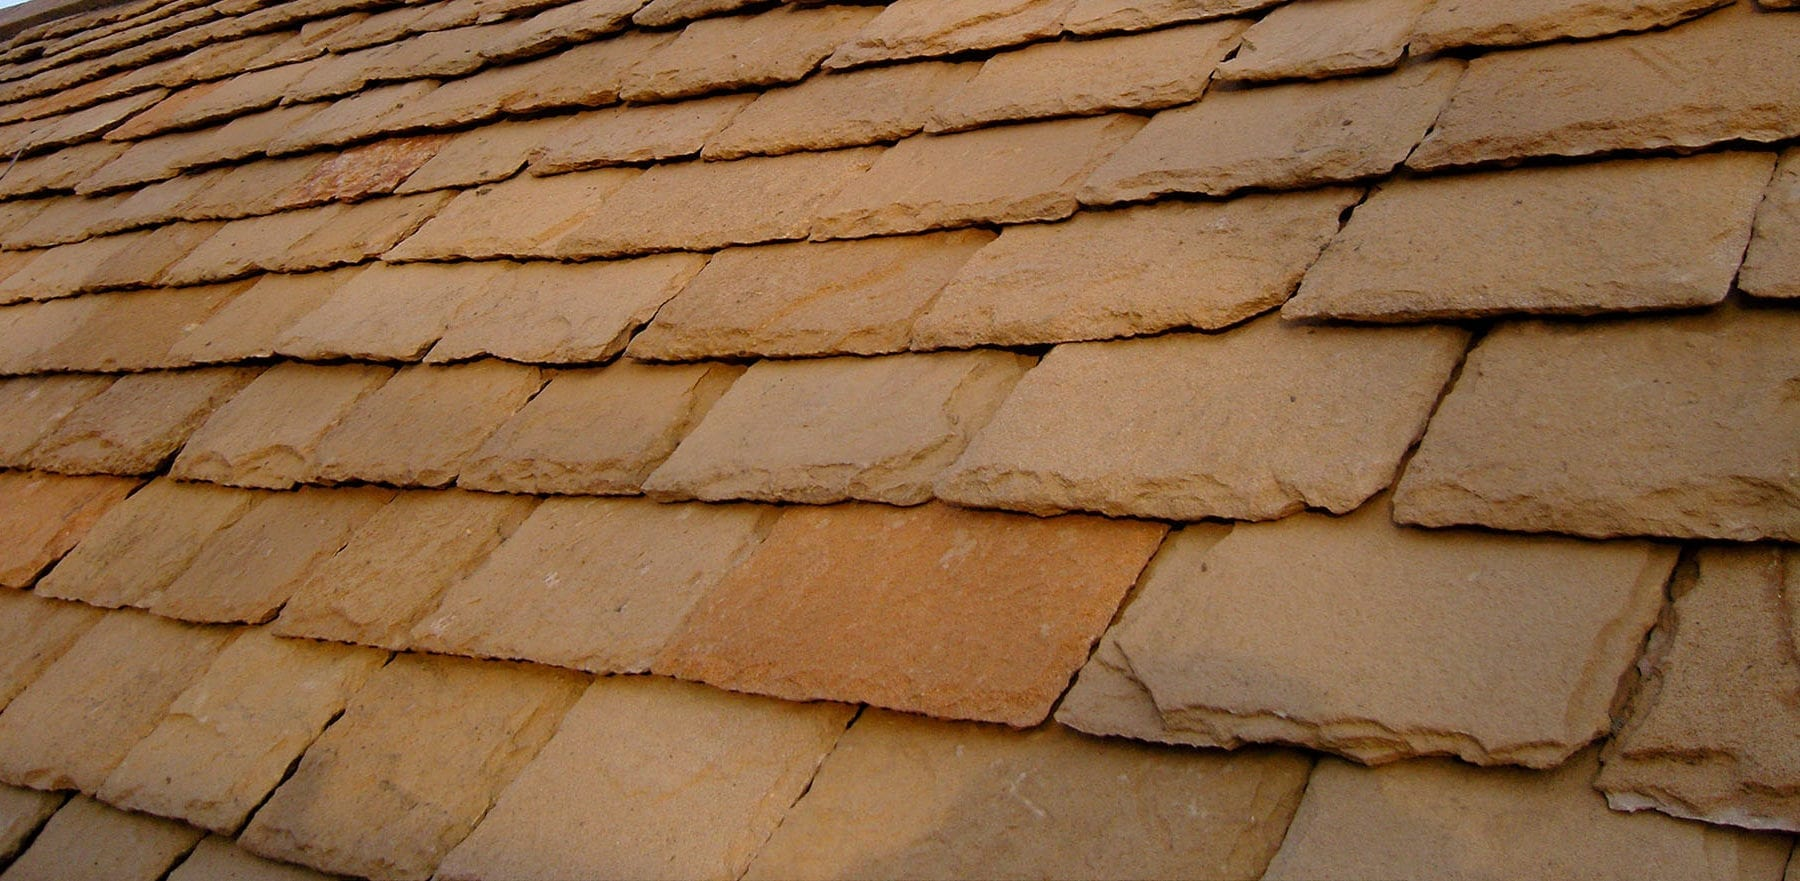 Lifestiles - Natural Stone Roof Tiles - Stroud, England 2